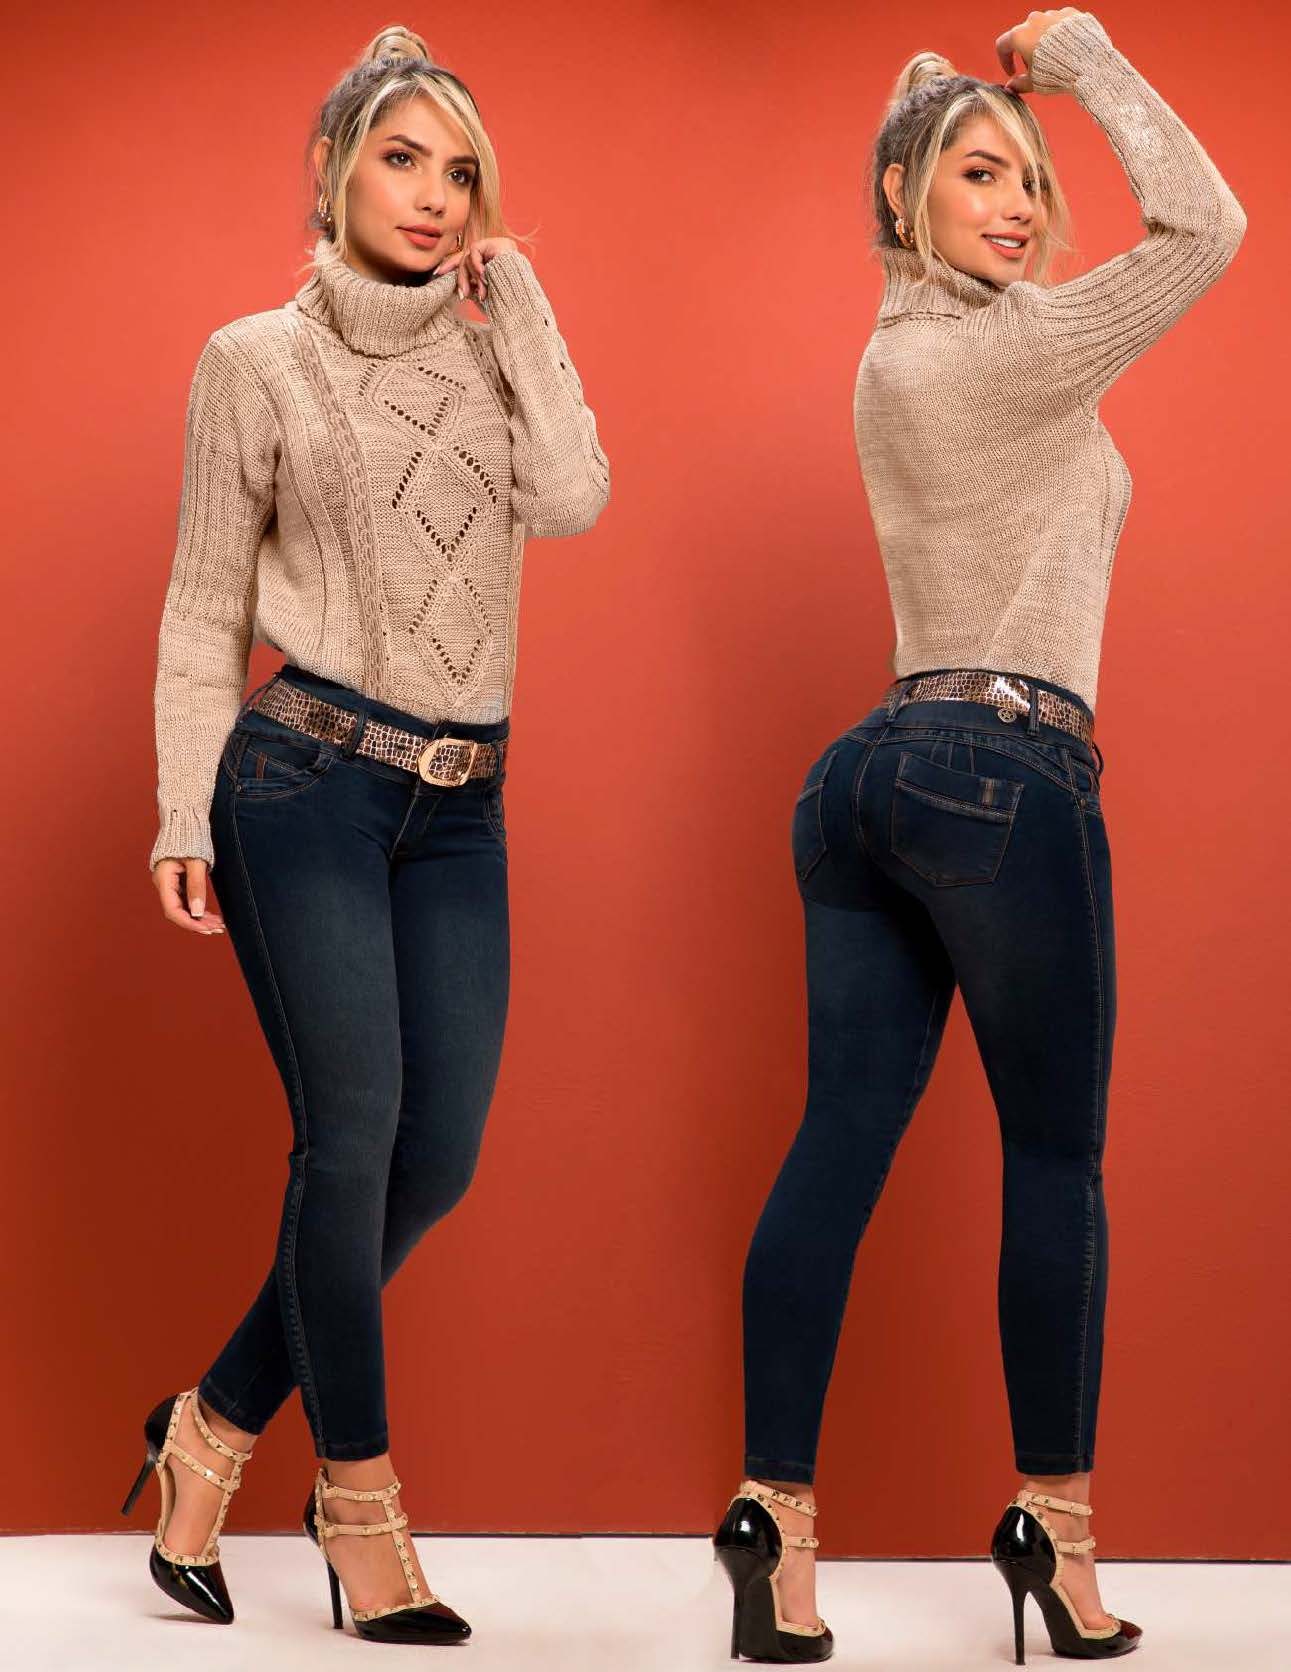 XIXMO JEANS_Page_18_Image_0001